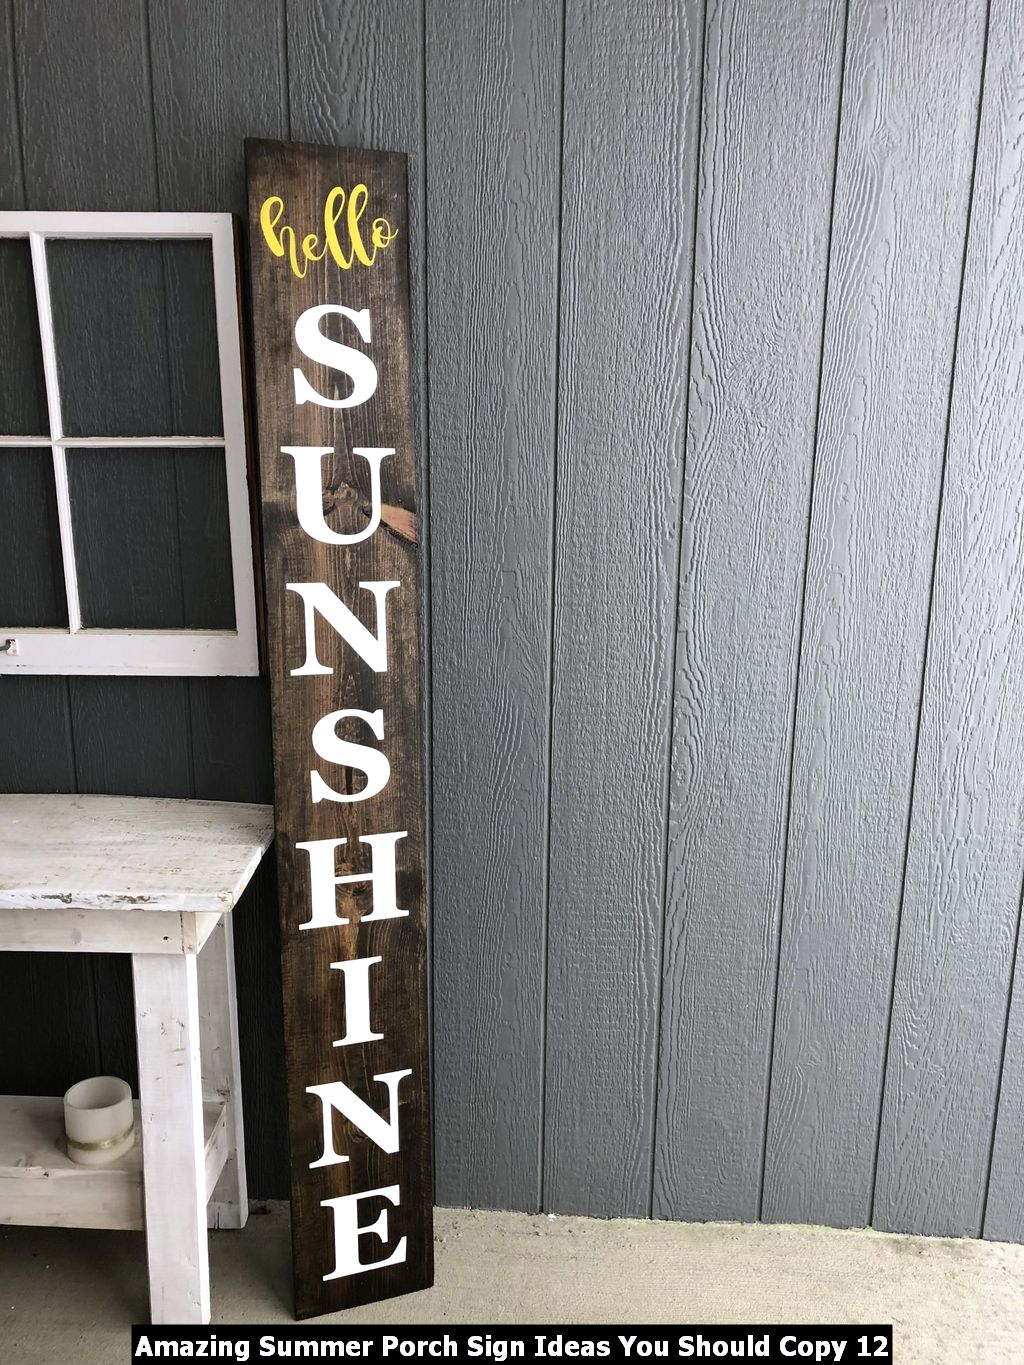 Amazing Summer Porch Sign Ideas You Should Copy 12